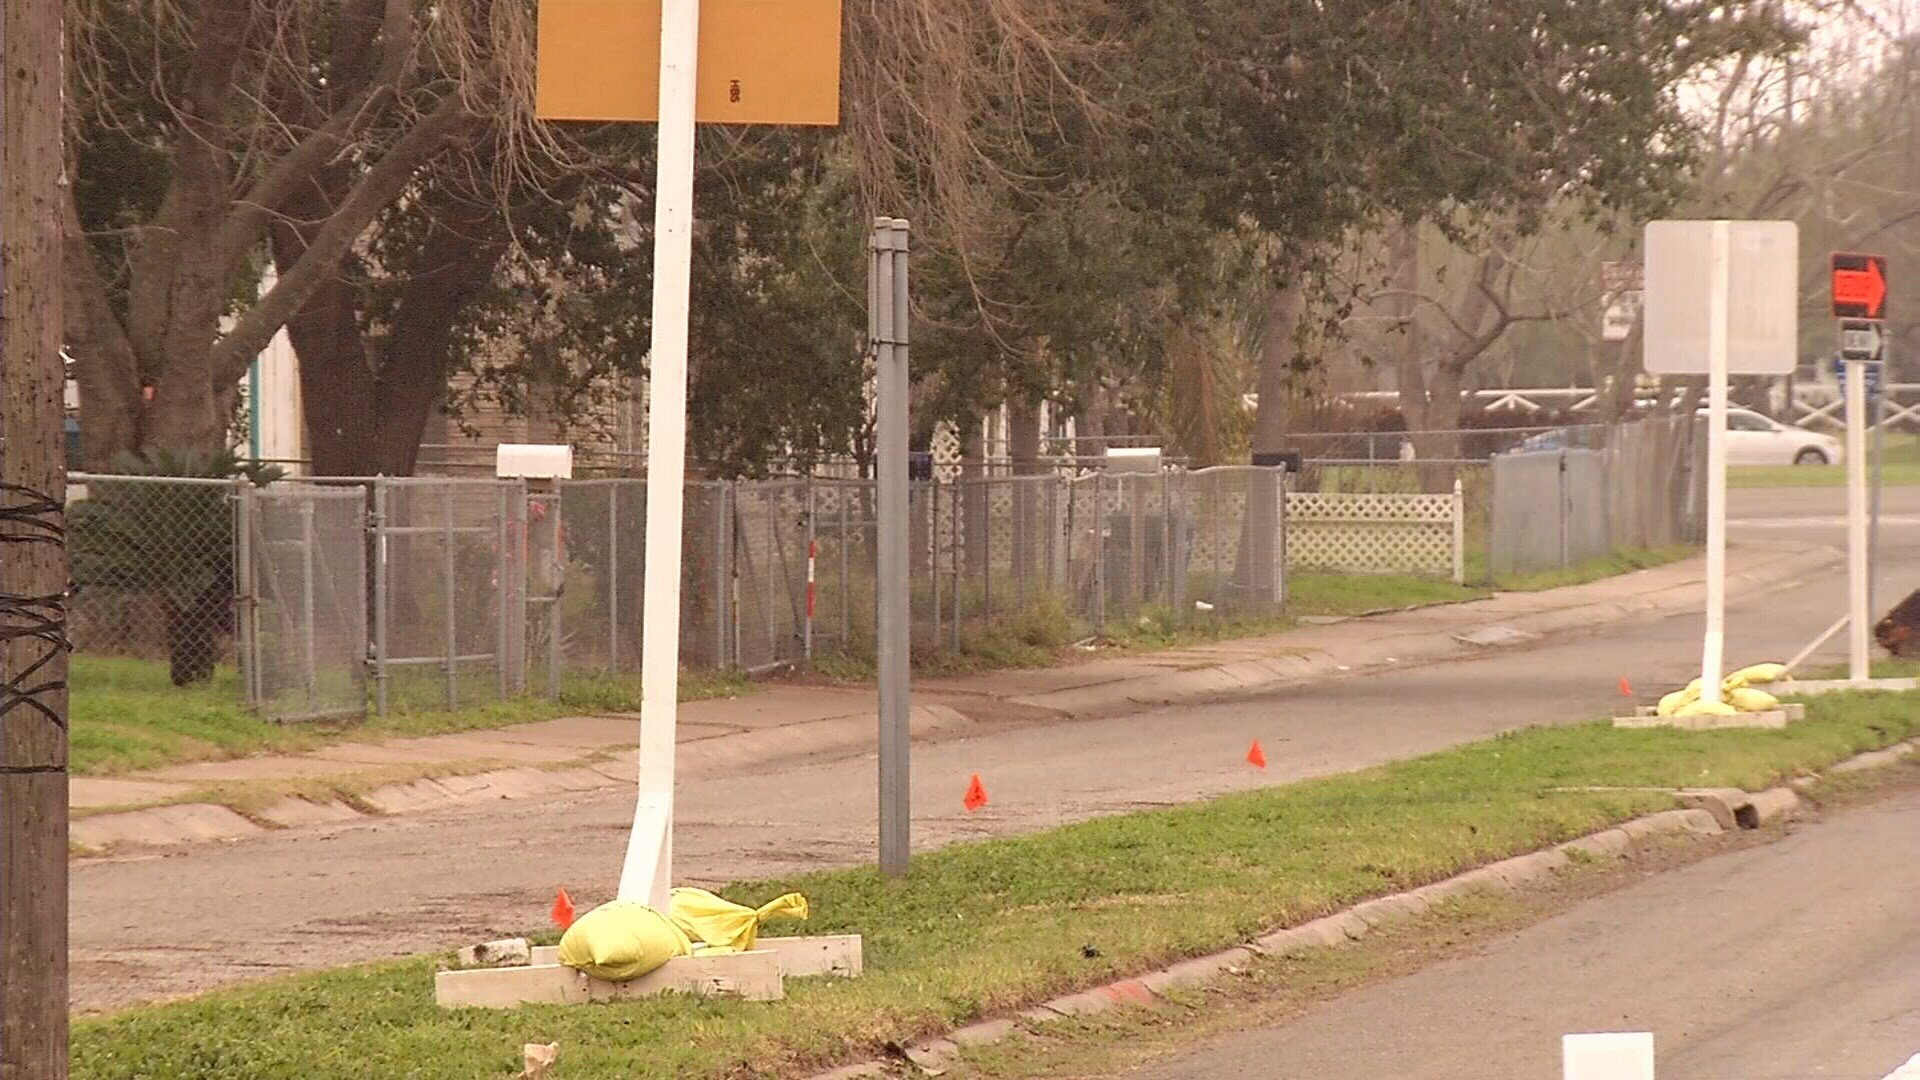 The 15-year old boy was walking on the 400 block of Up River Road when the five dogs attacked him.